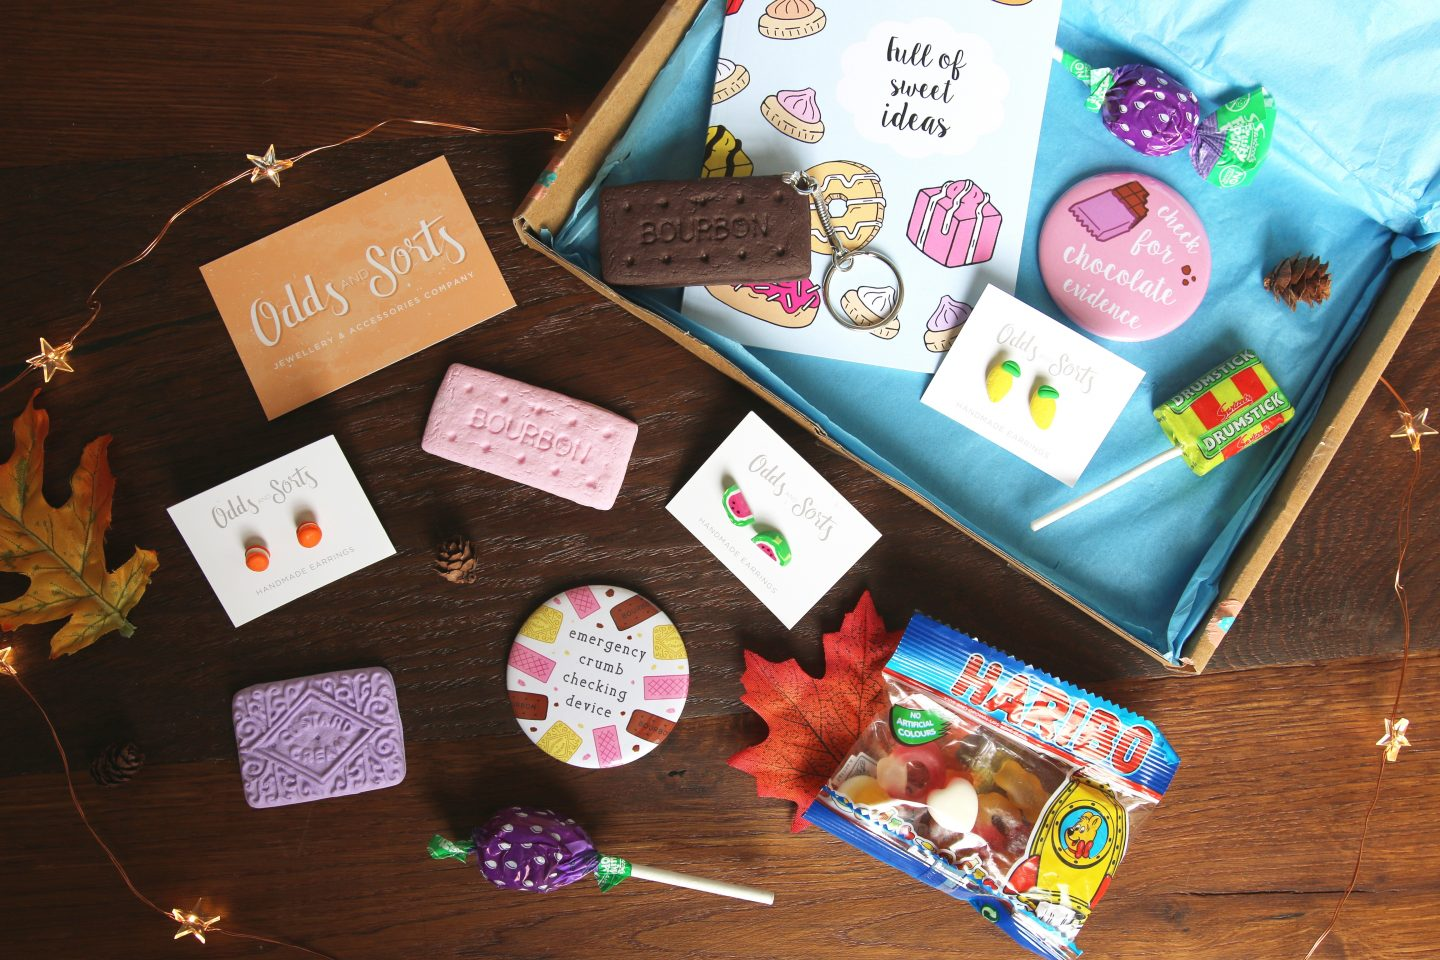 Odds and Sorts Lucky Dip Box Review